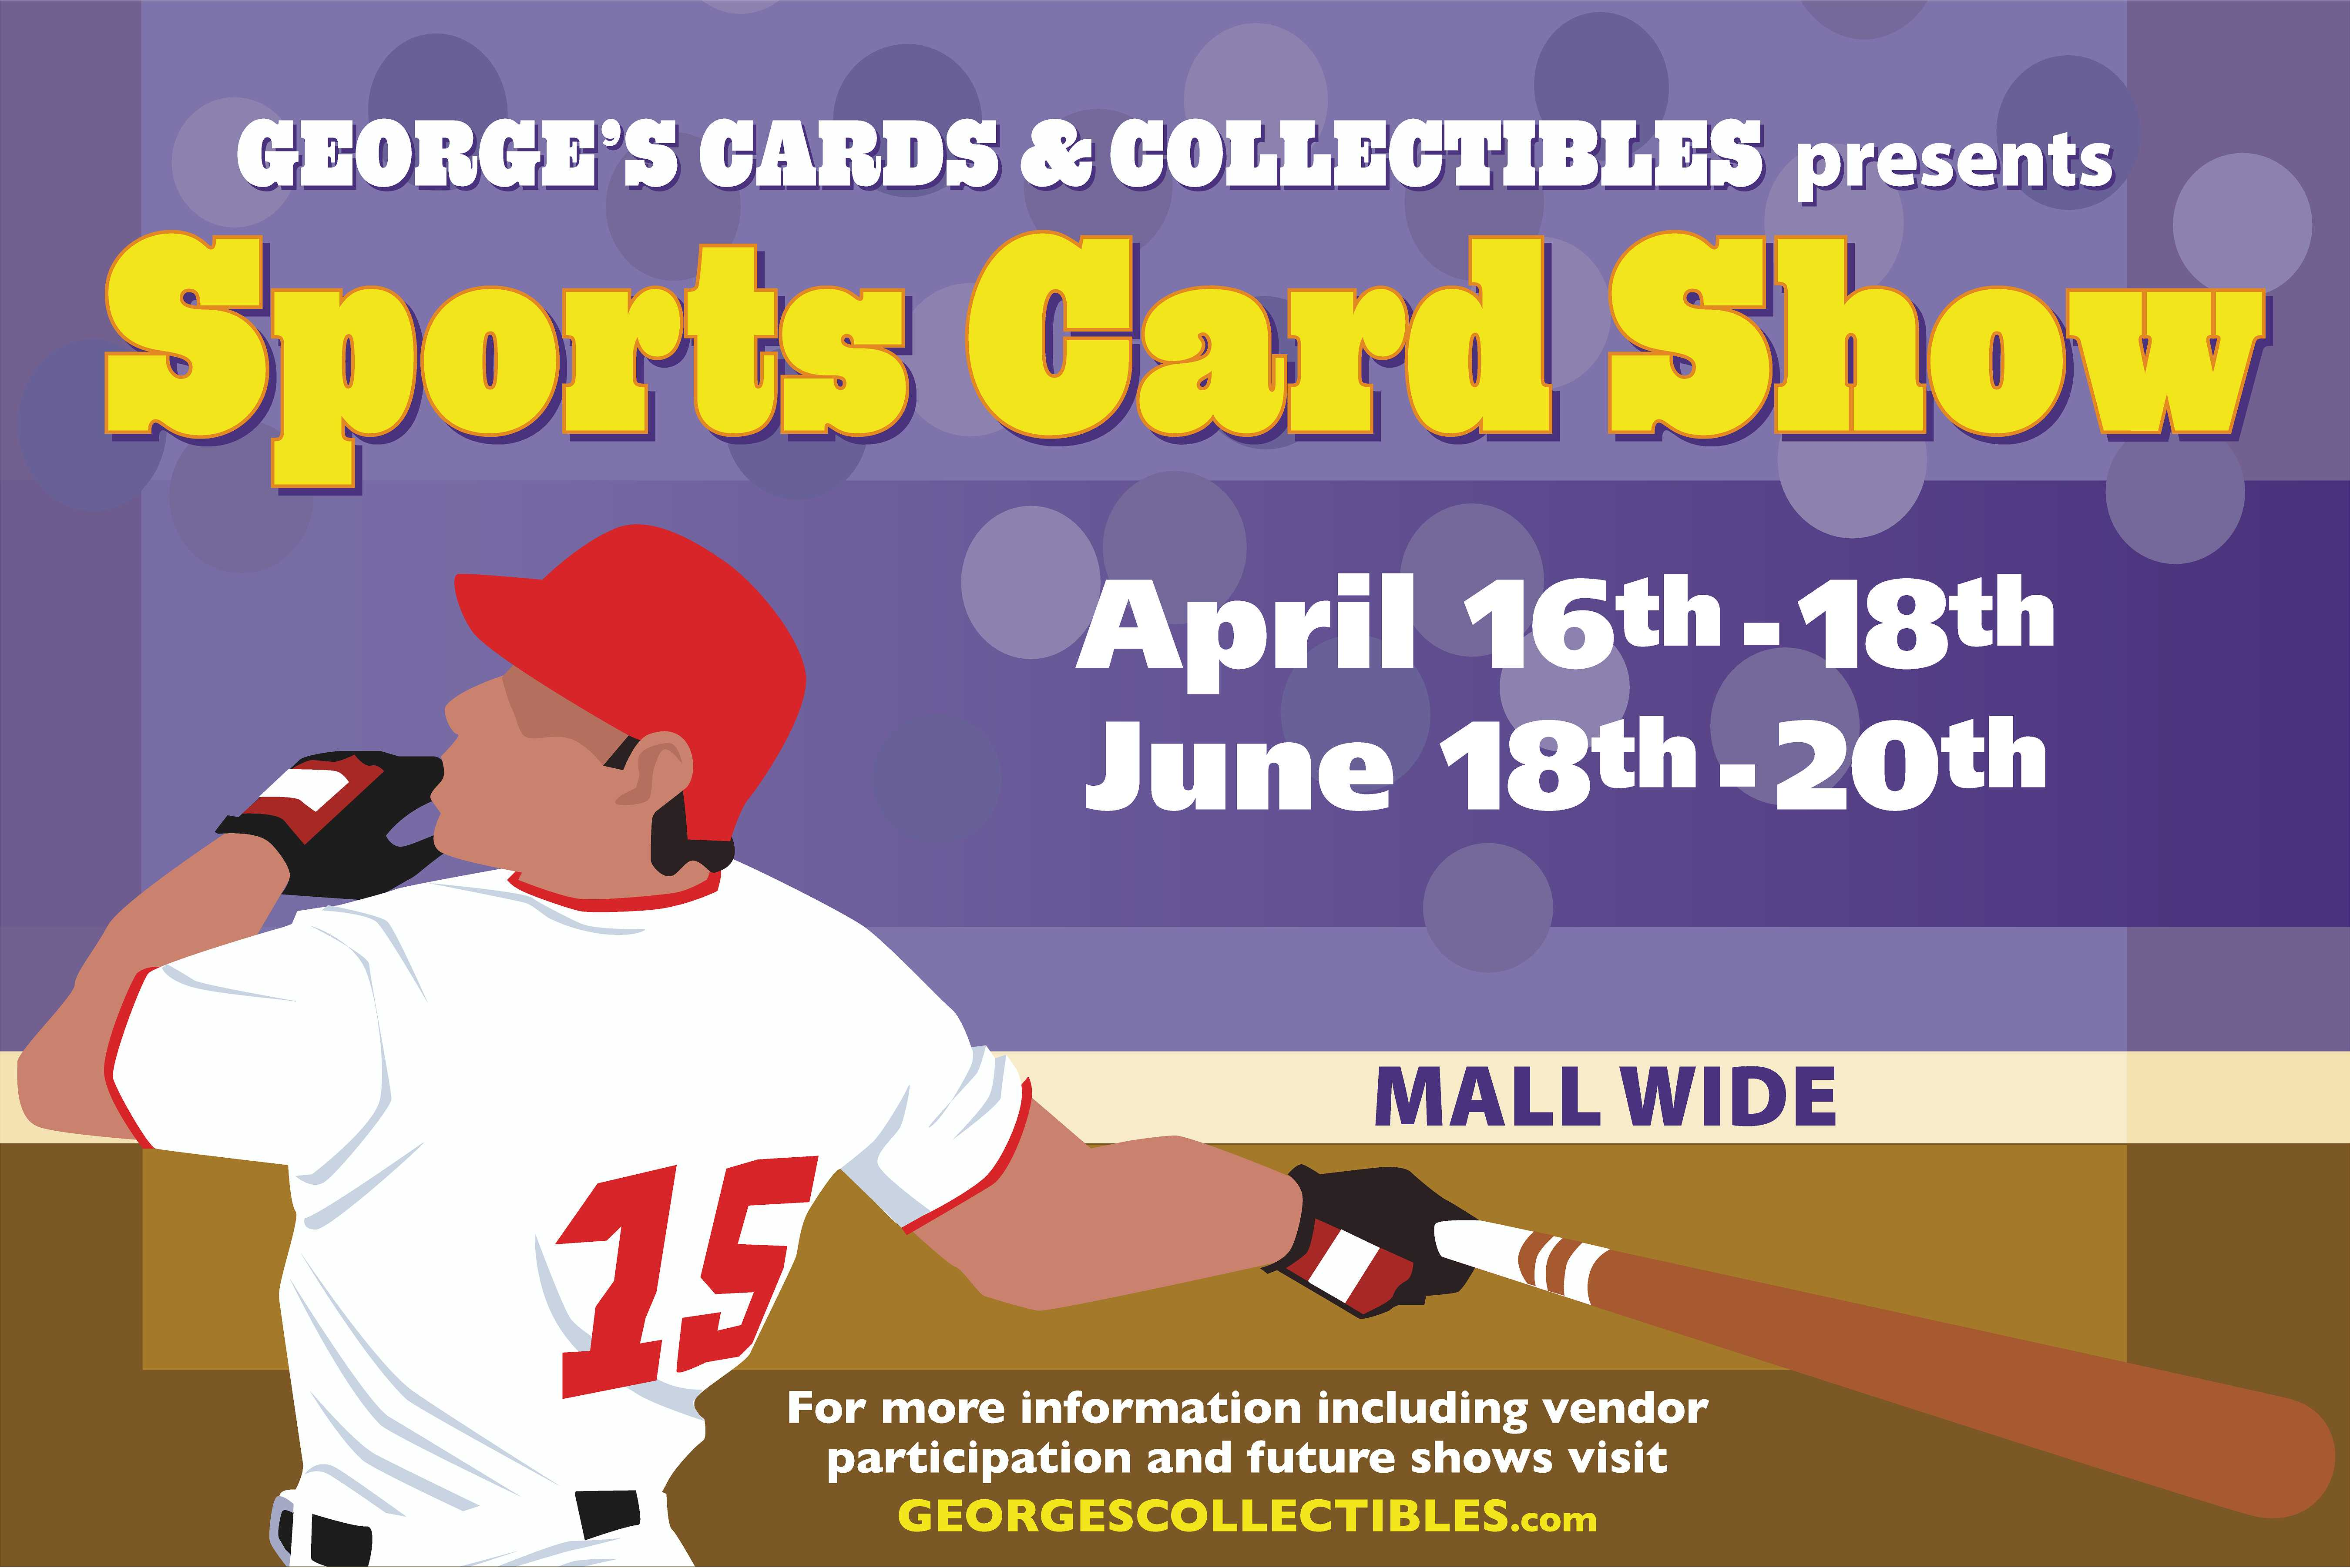 Promotional photo George's Card & Collectibles presents Sports Card Show